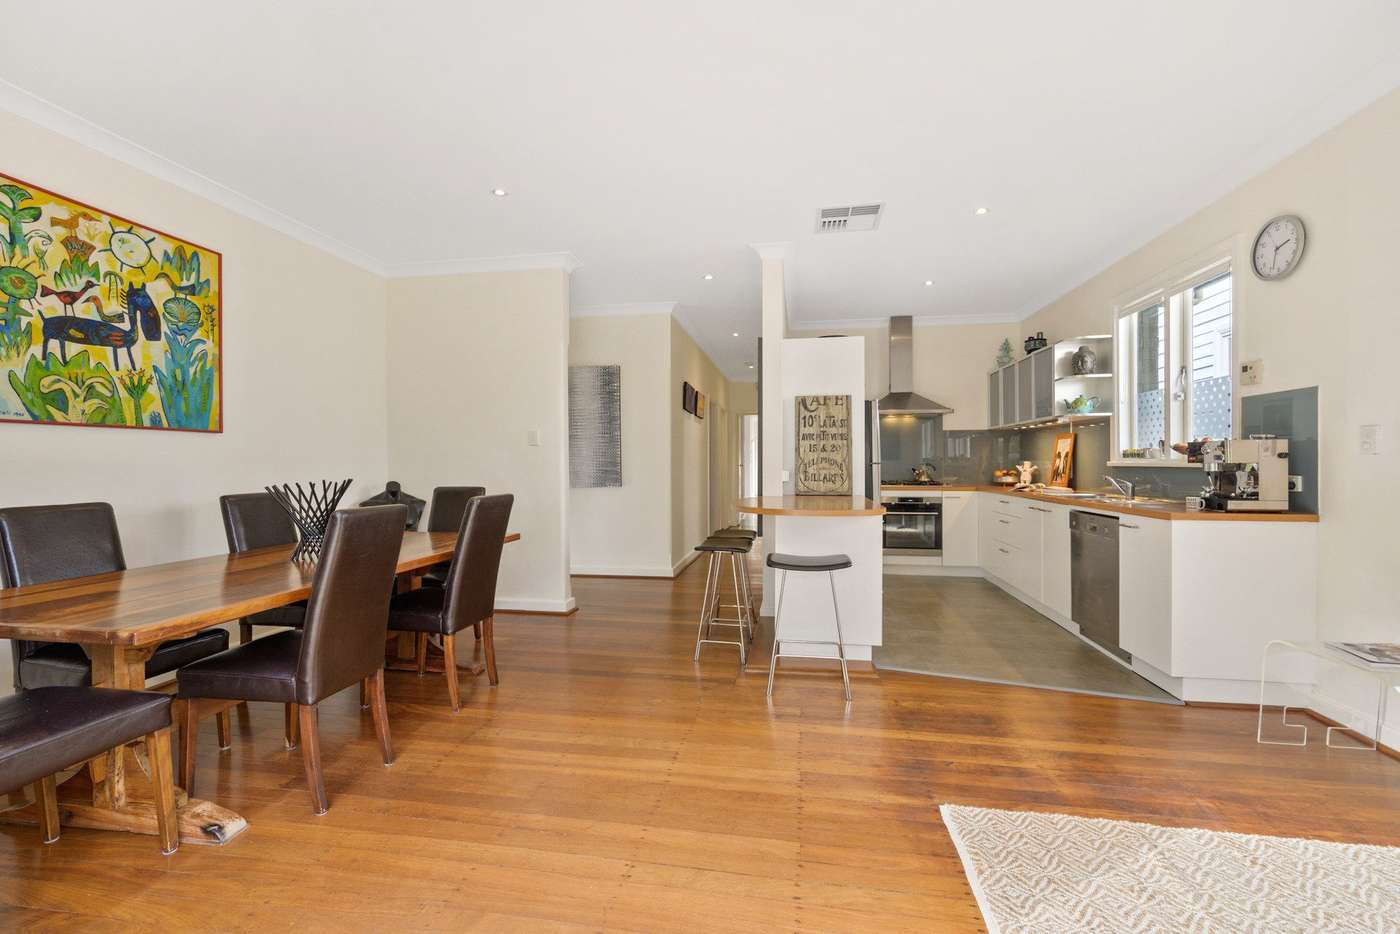 Main view of Homely house listing, 4 Hilda Street, Shenton Park WA 6008